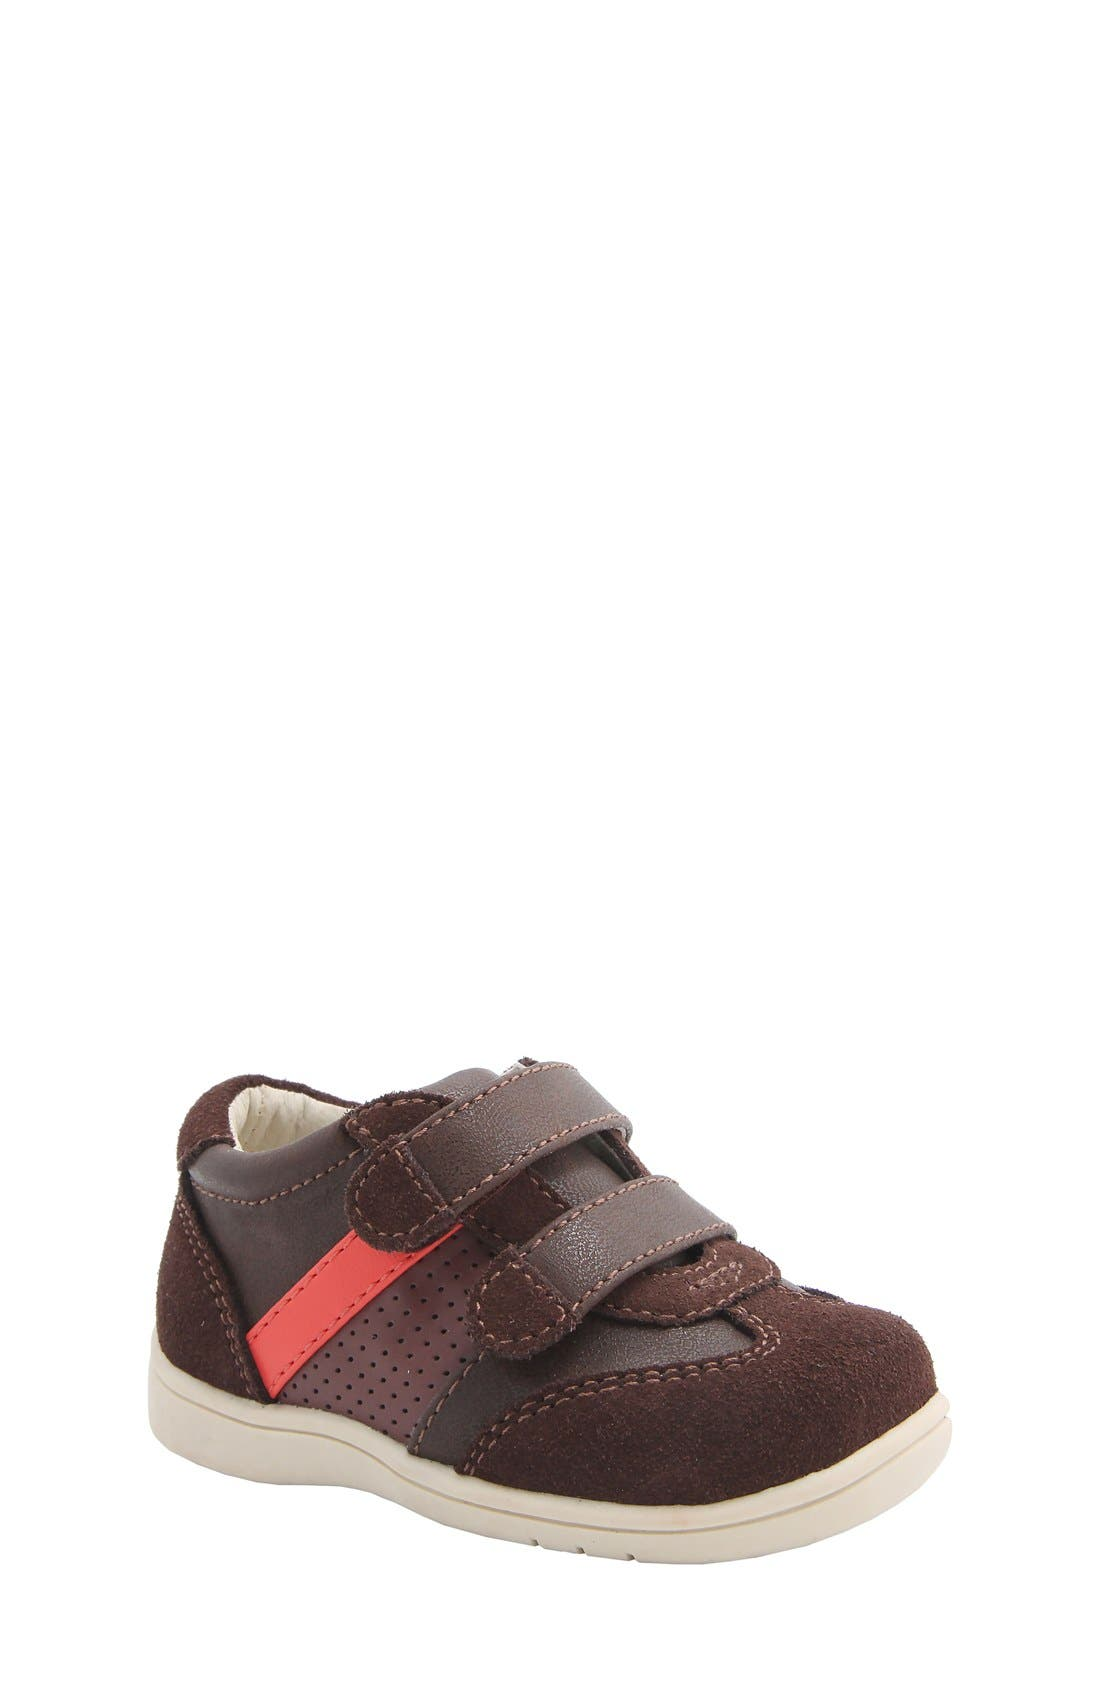 Nina 'Everest' Sneaker (Baby & Walker)